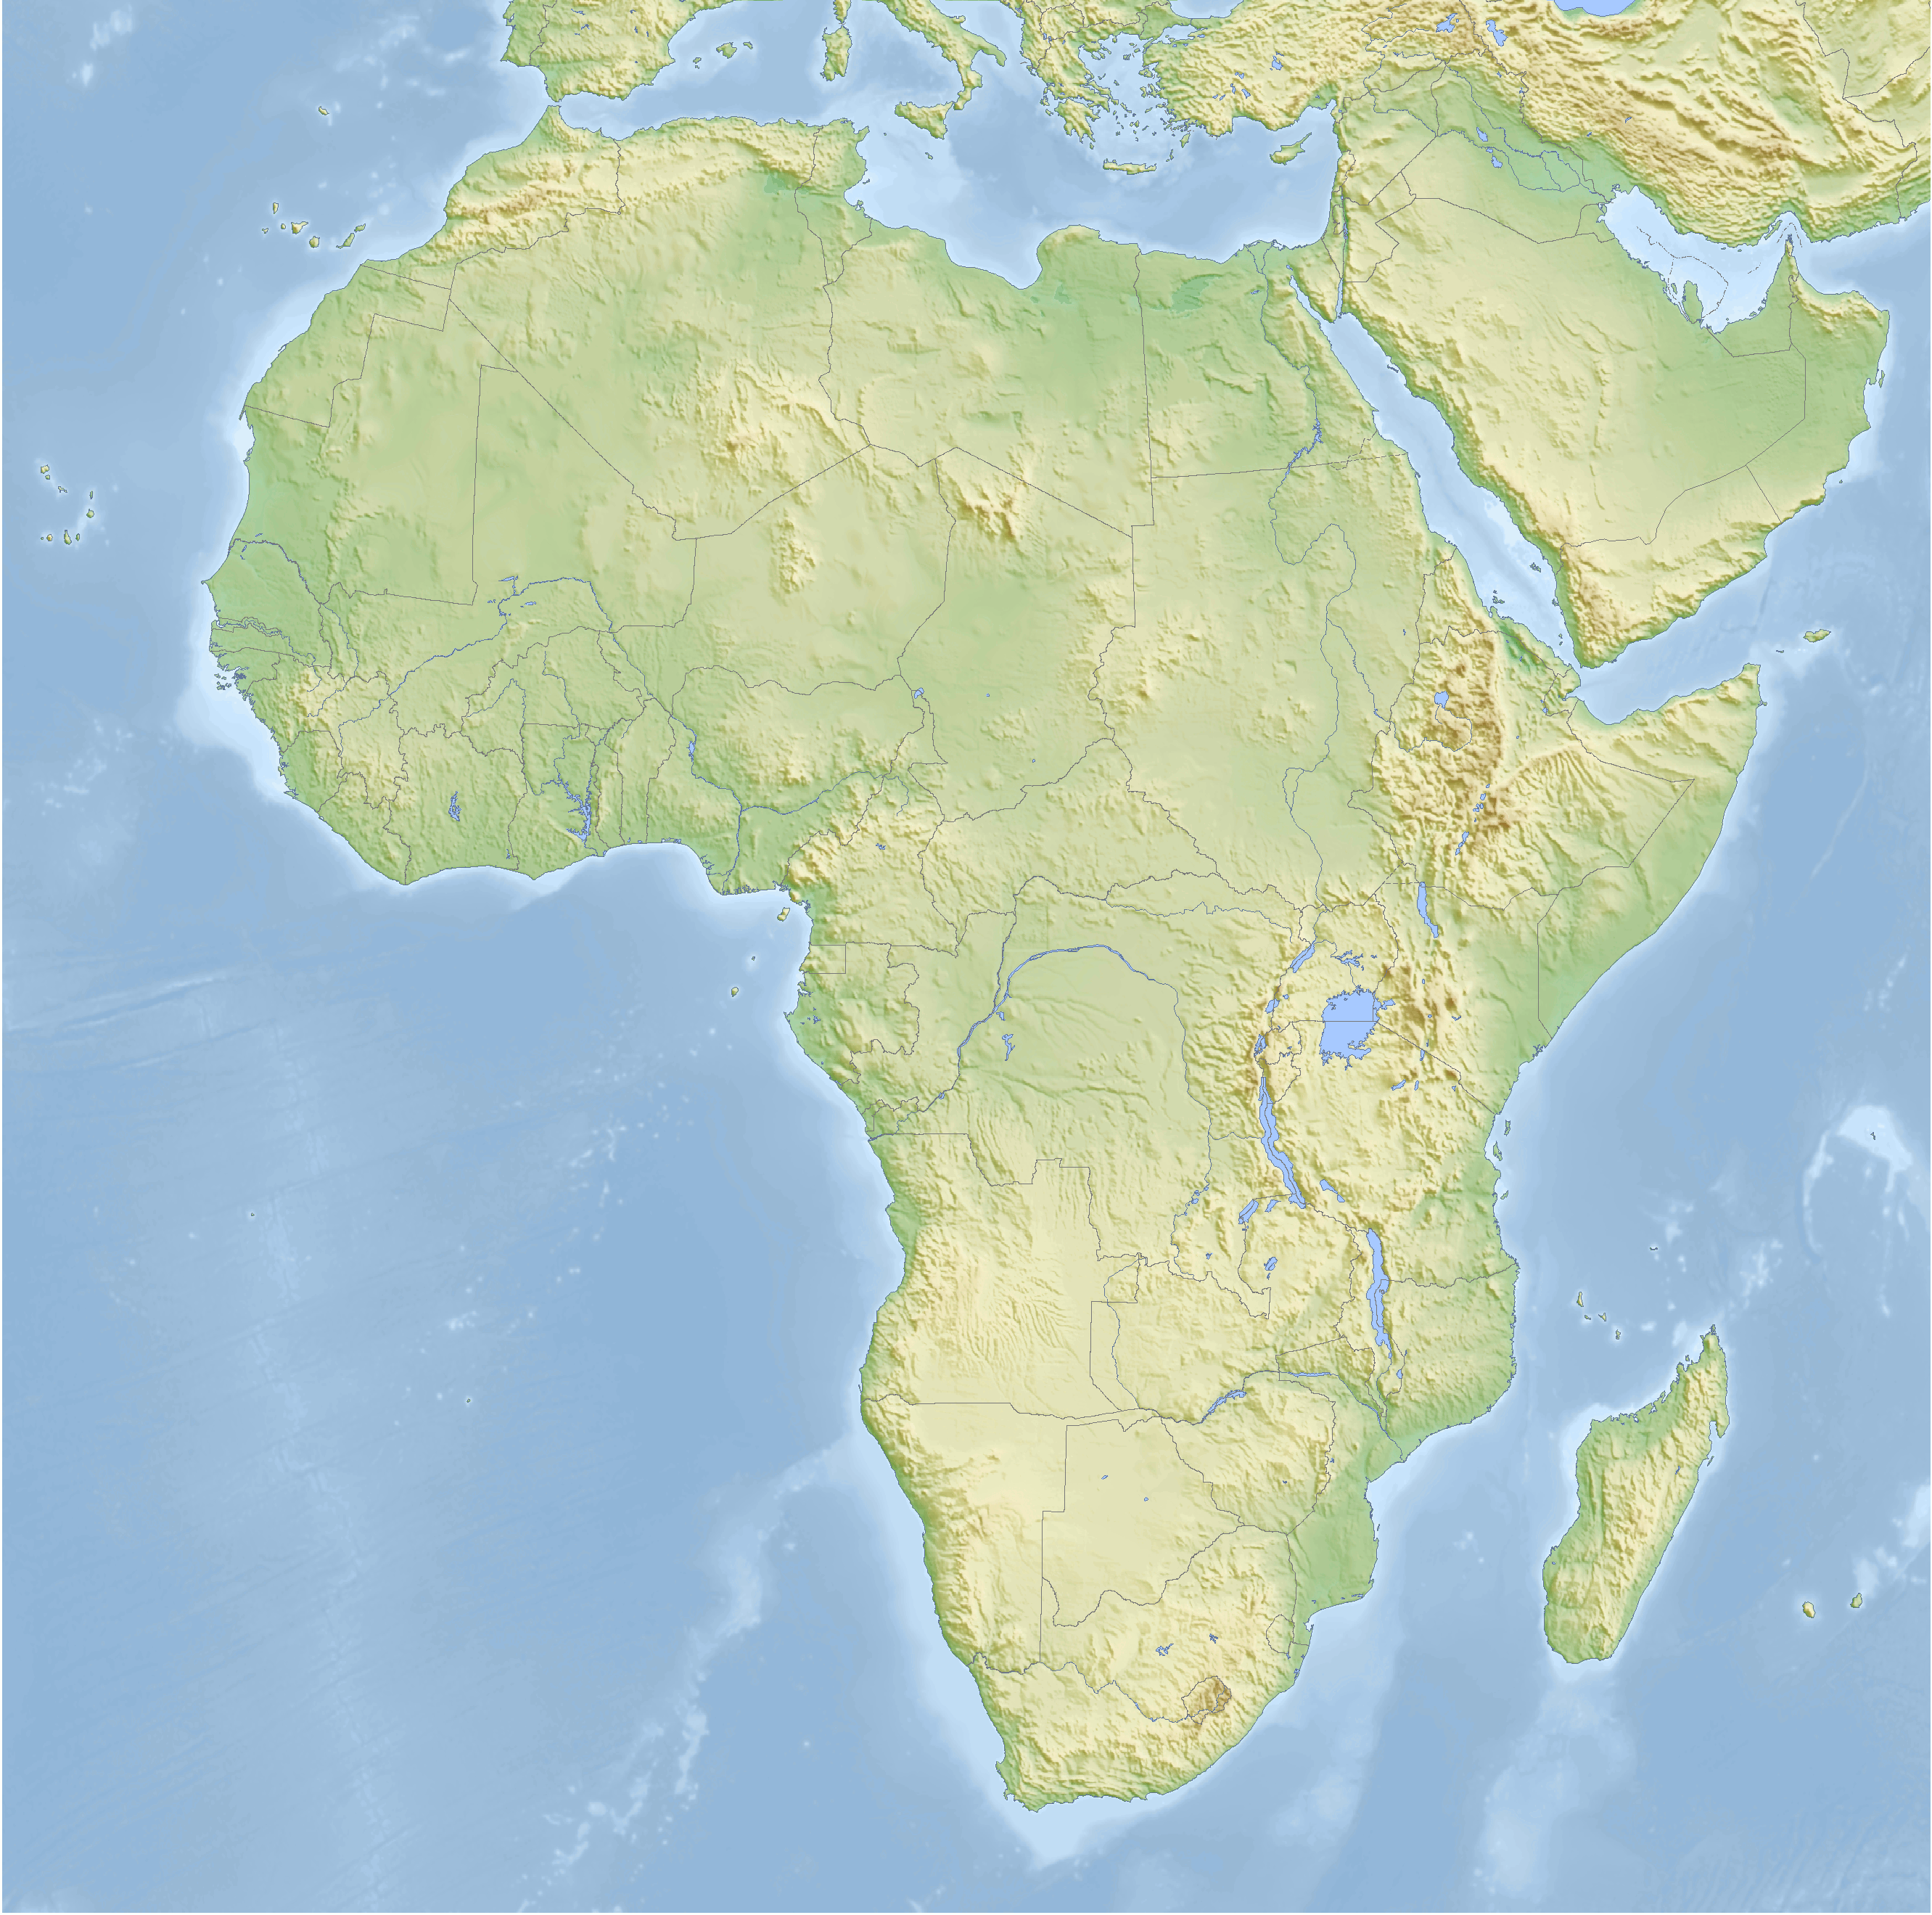 Topographic map of Africa 2008